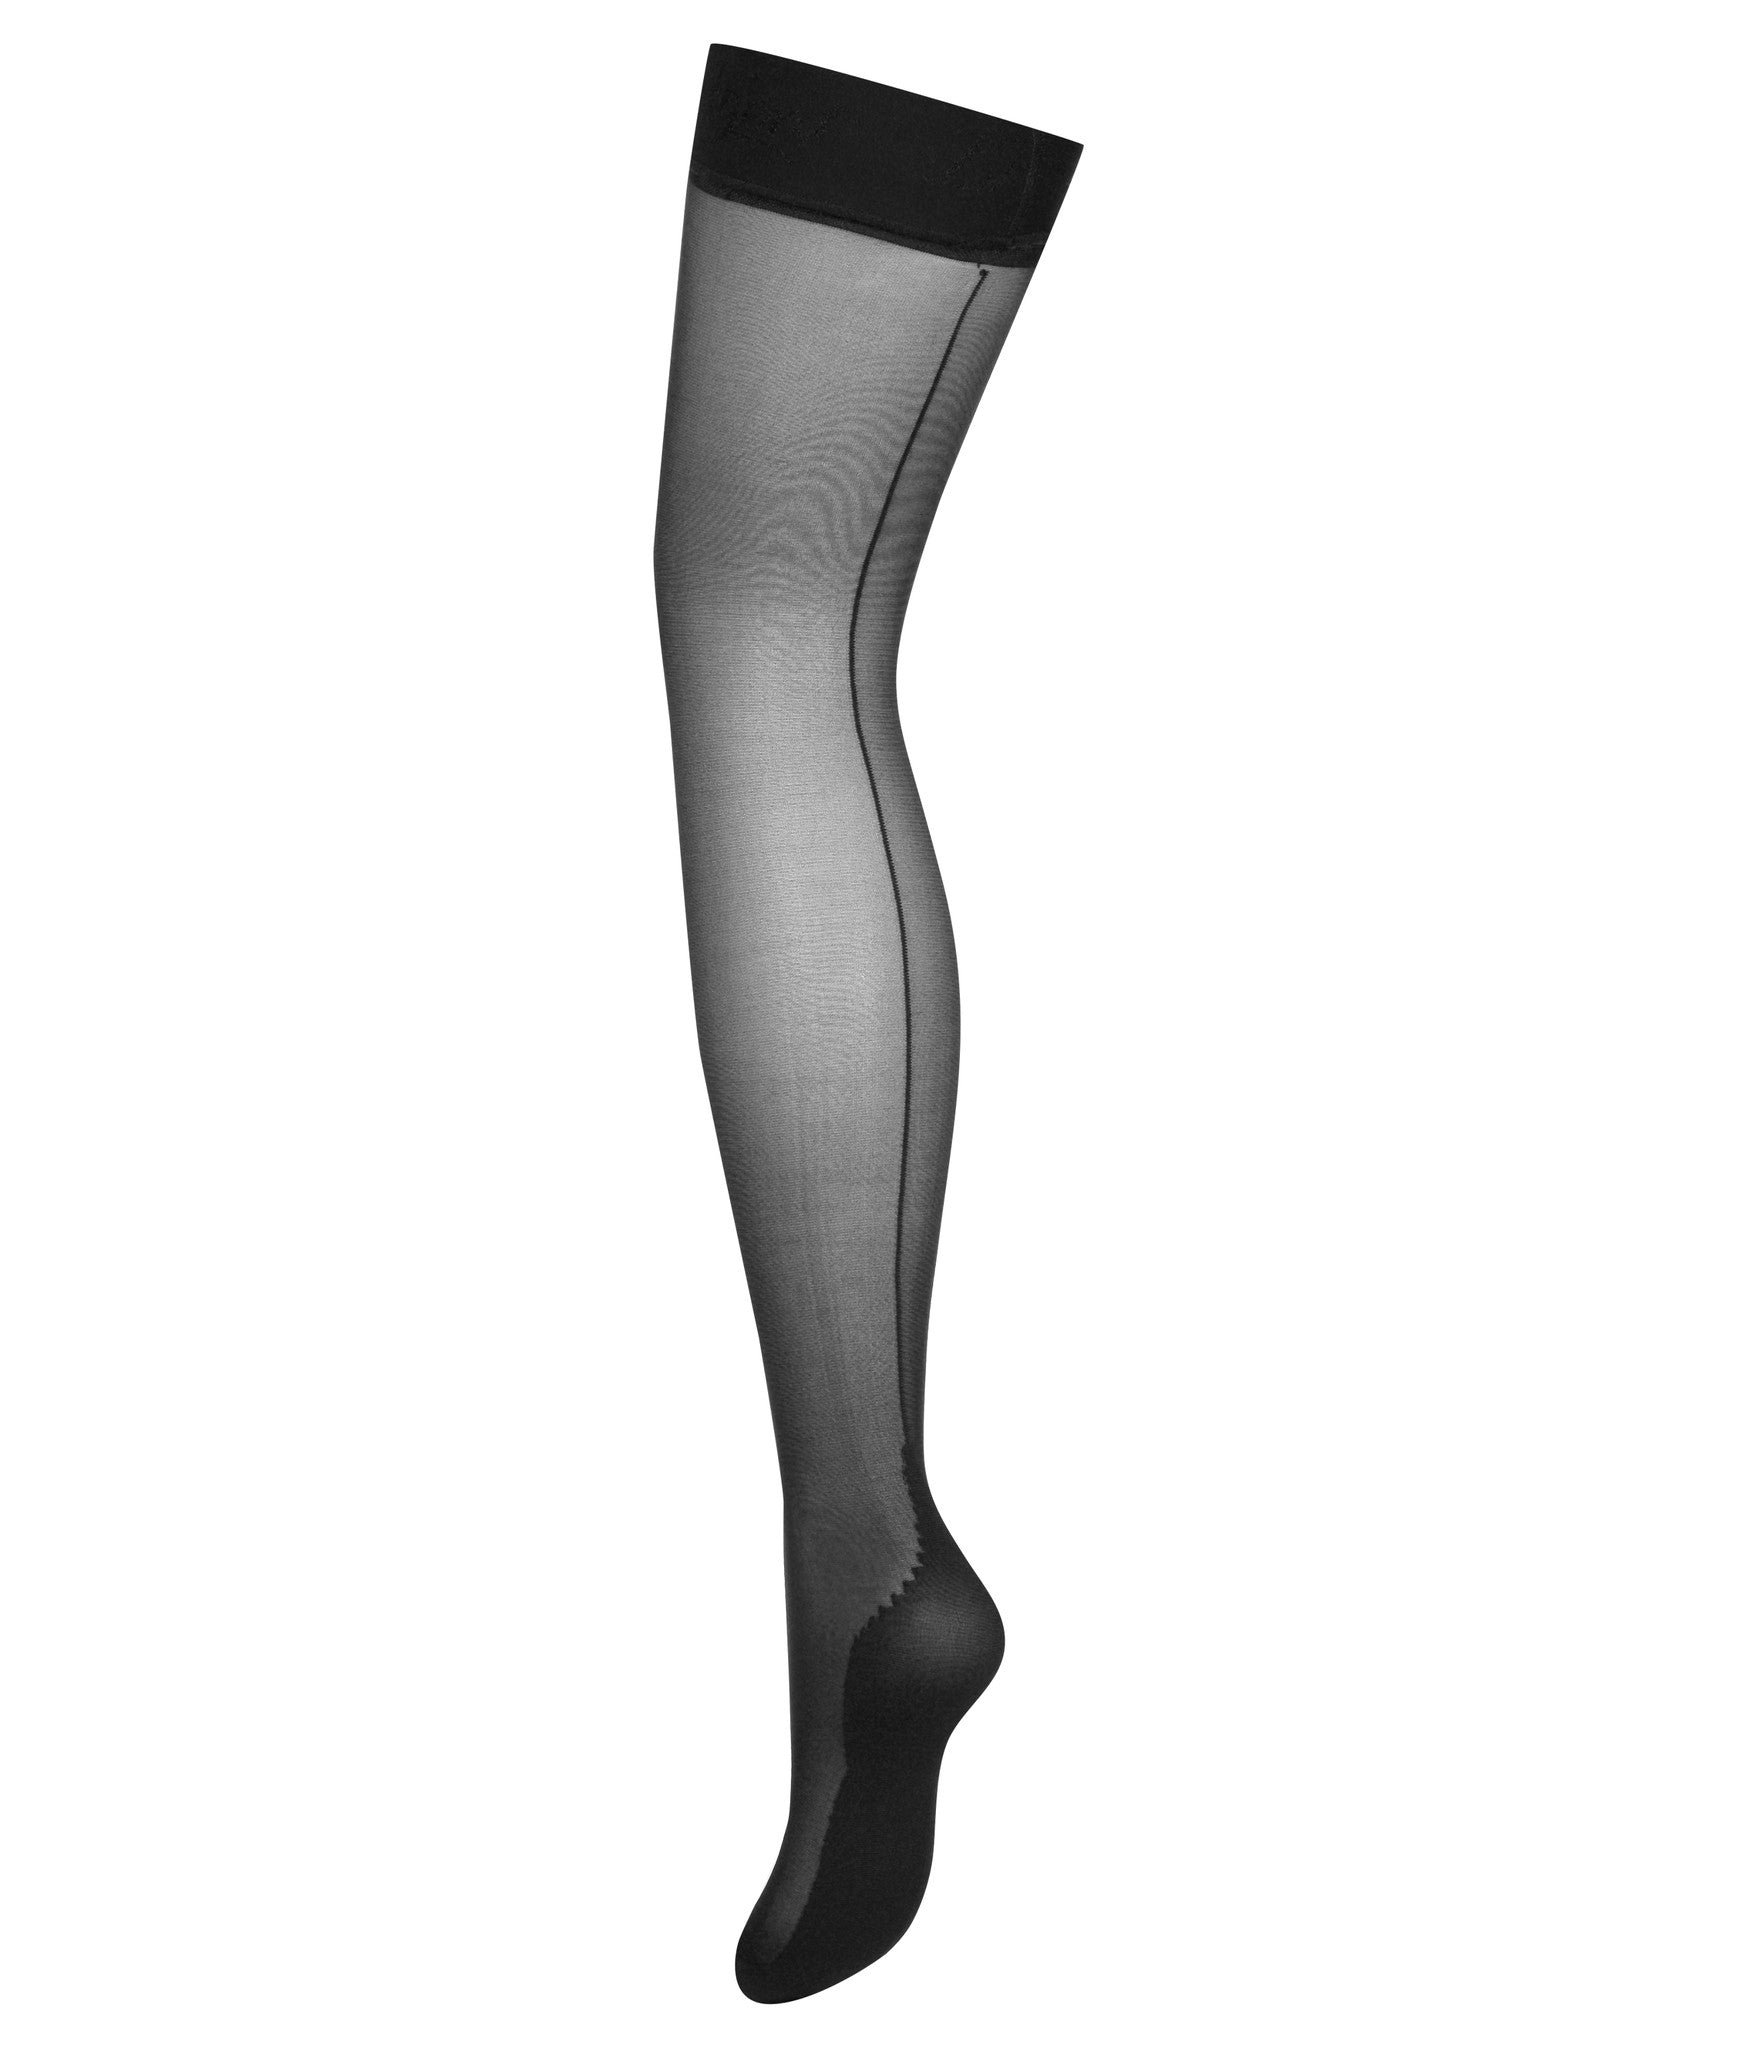 L'Agent by Agent Provocateur Seam & Heel Hold Ups - Knickers & Pearls Boutique - 2